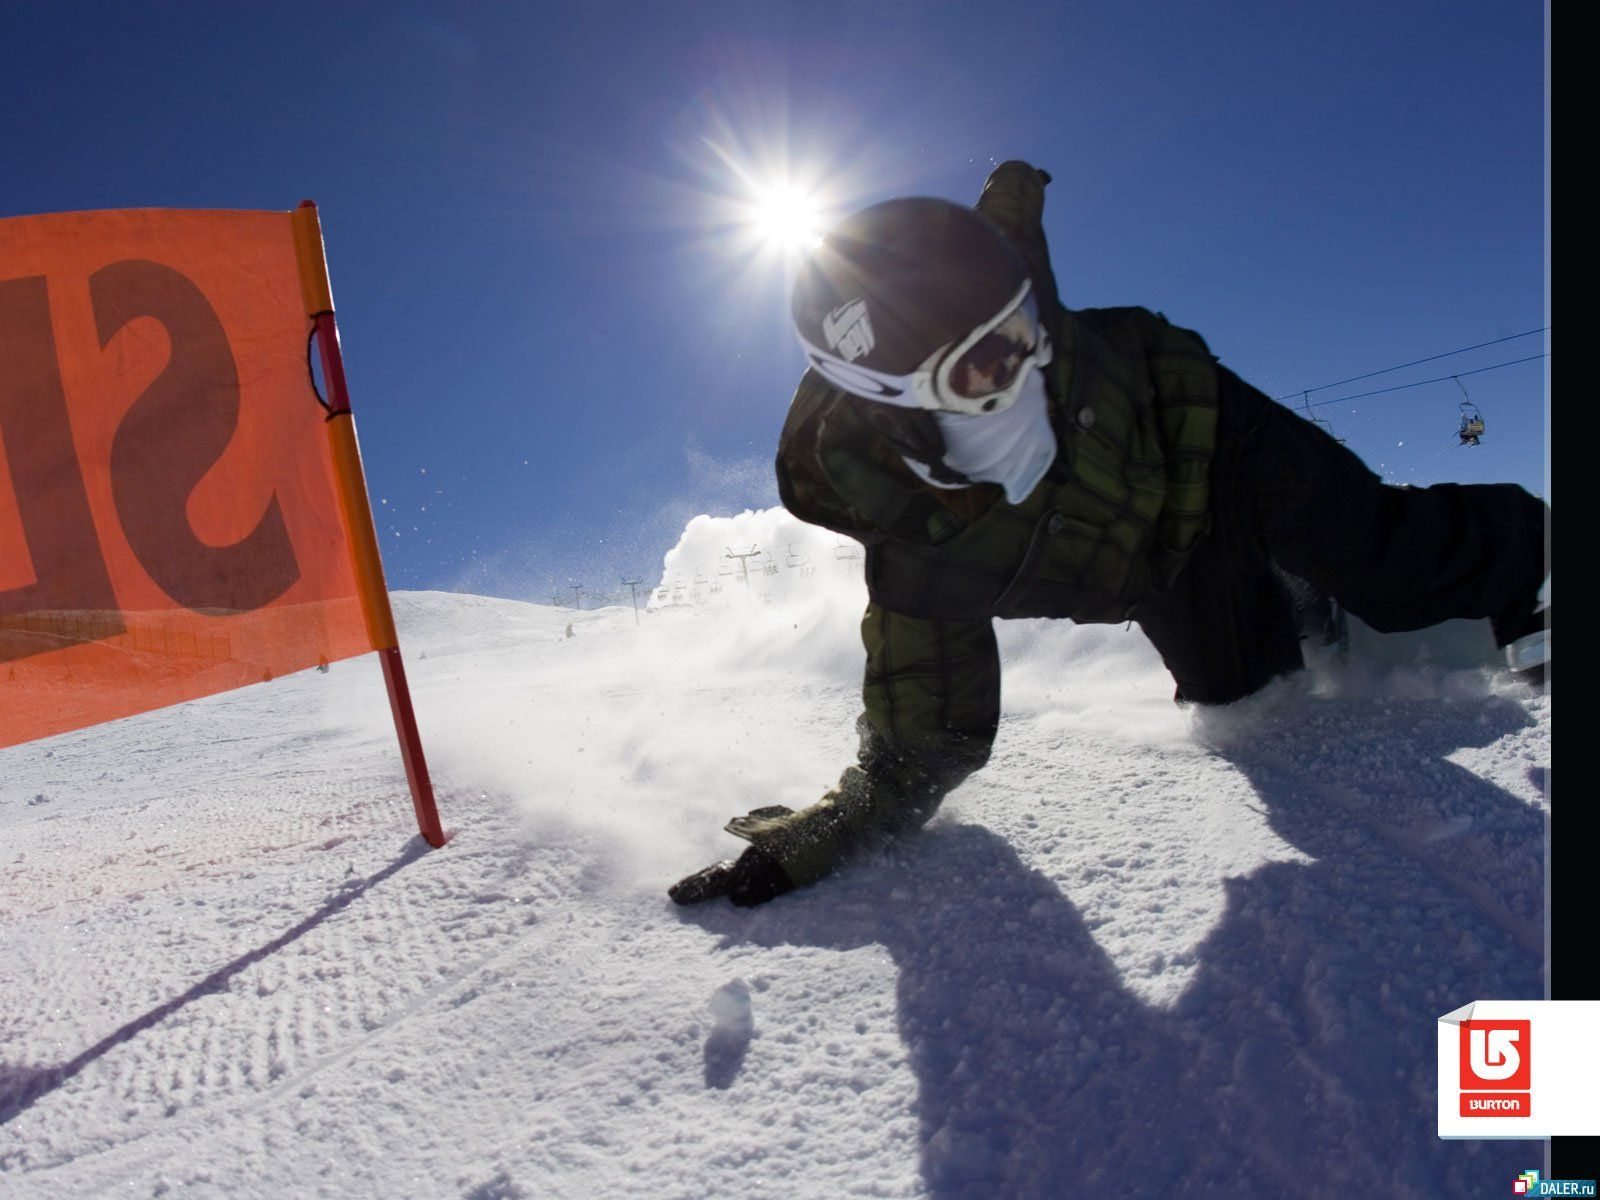 snowboarding_wallpaper_081